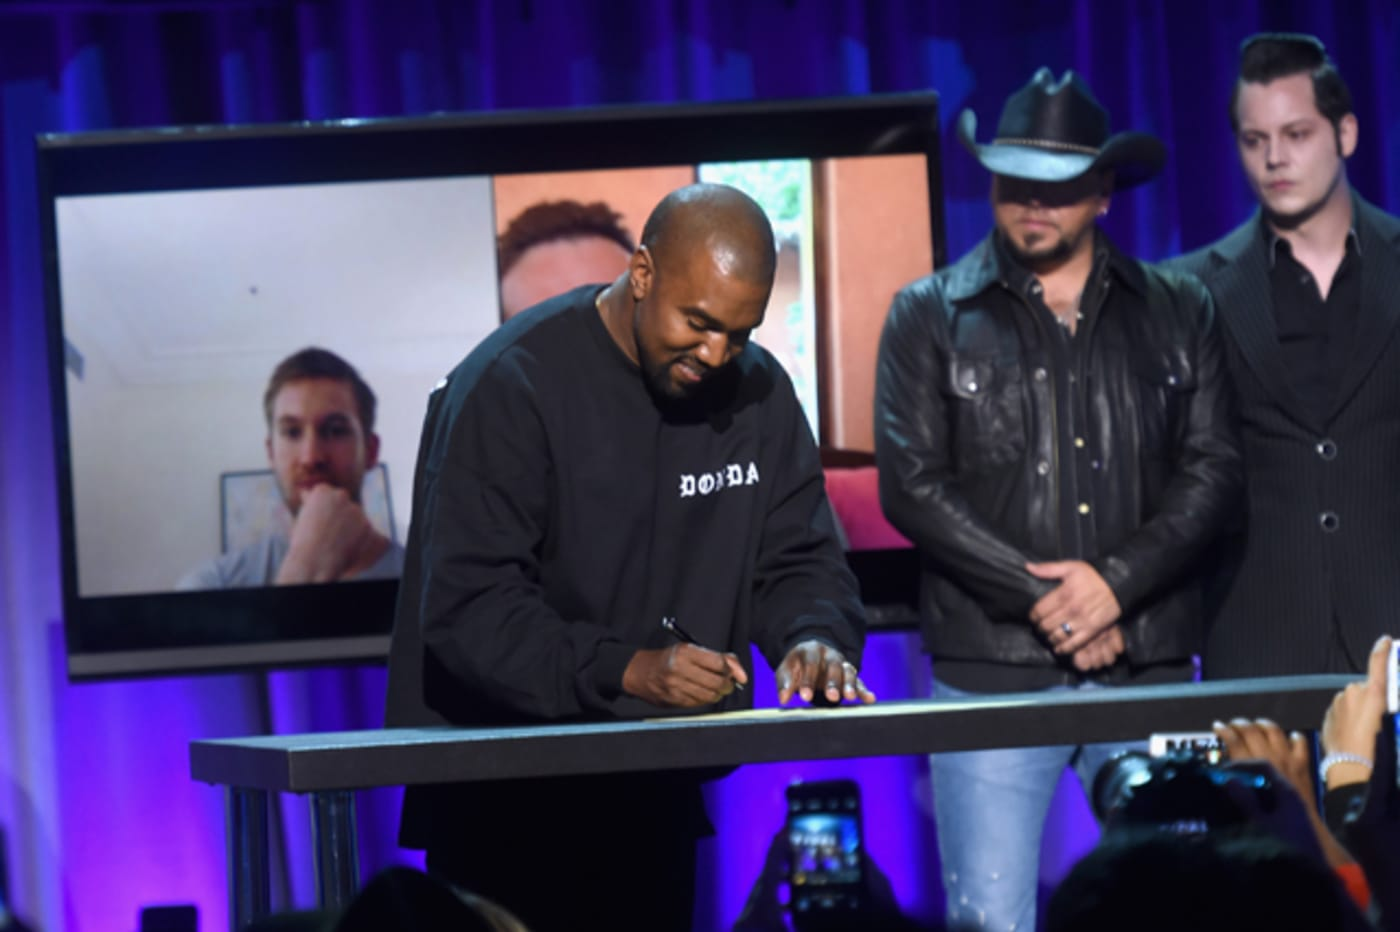 Kanye West at Tidal launch event